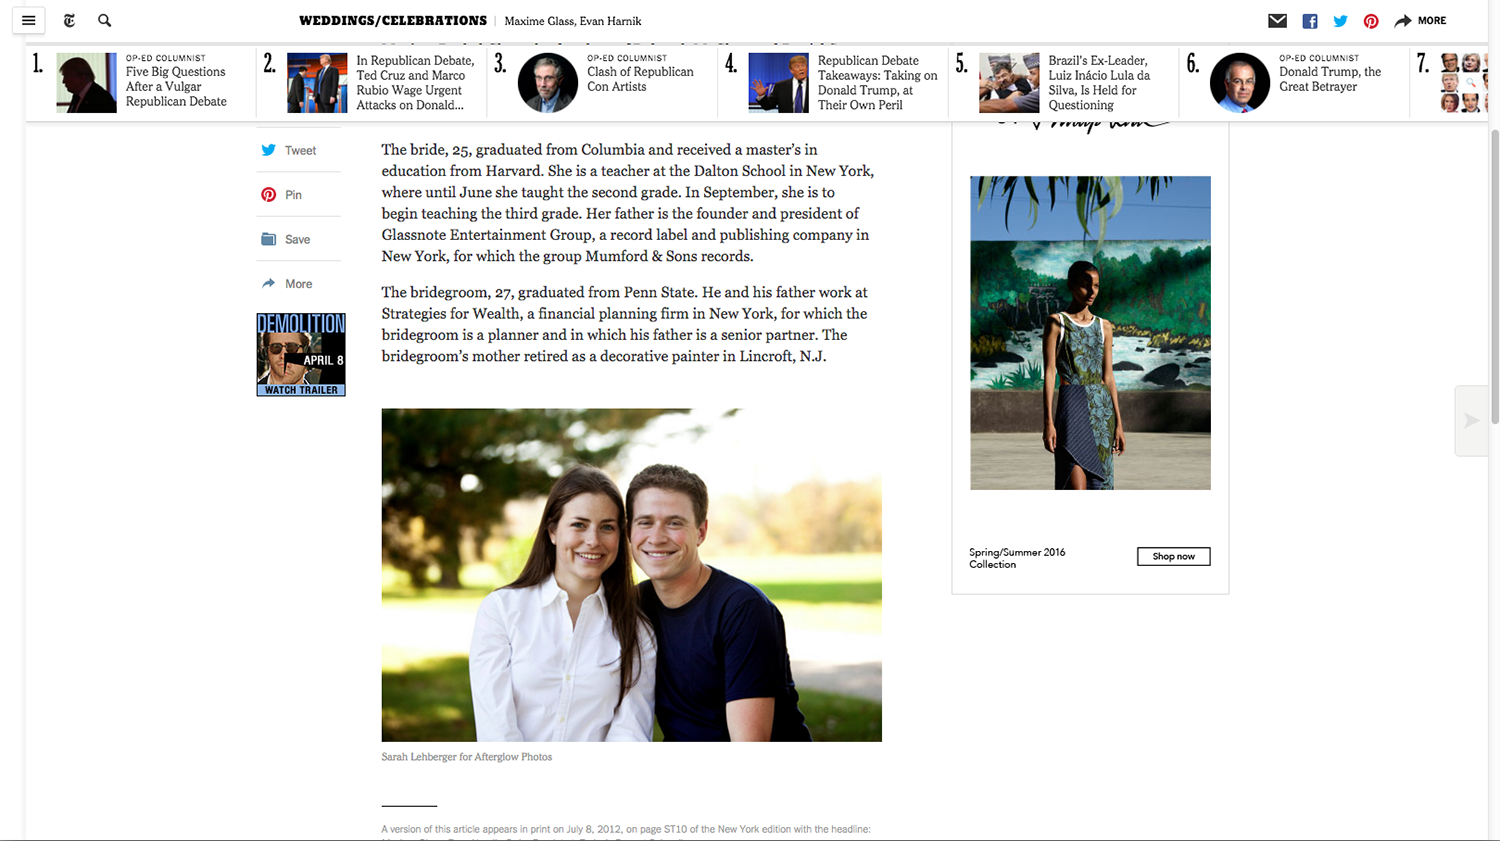 NY Times photo feature in the Engagements section